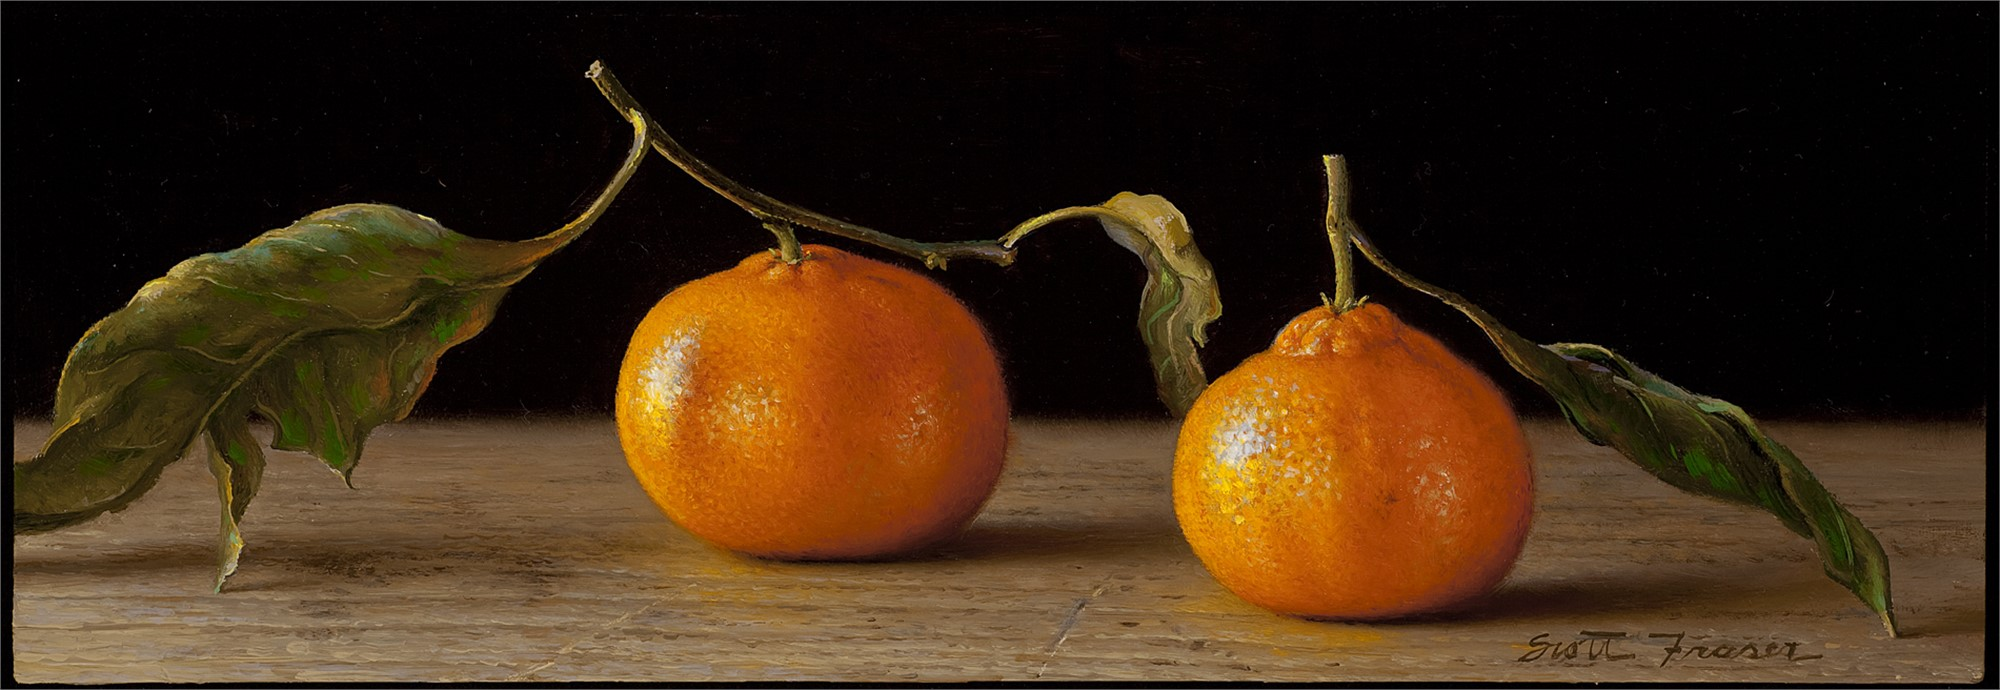 Two Satsumas by Scott Fraser